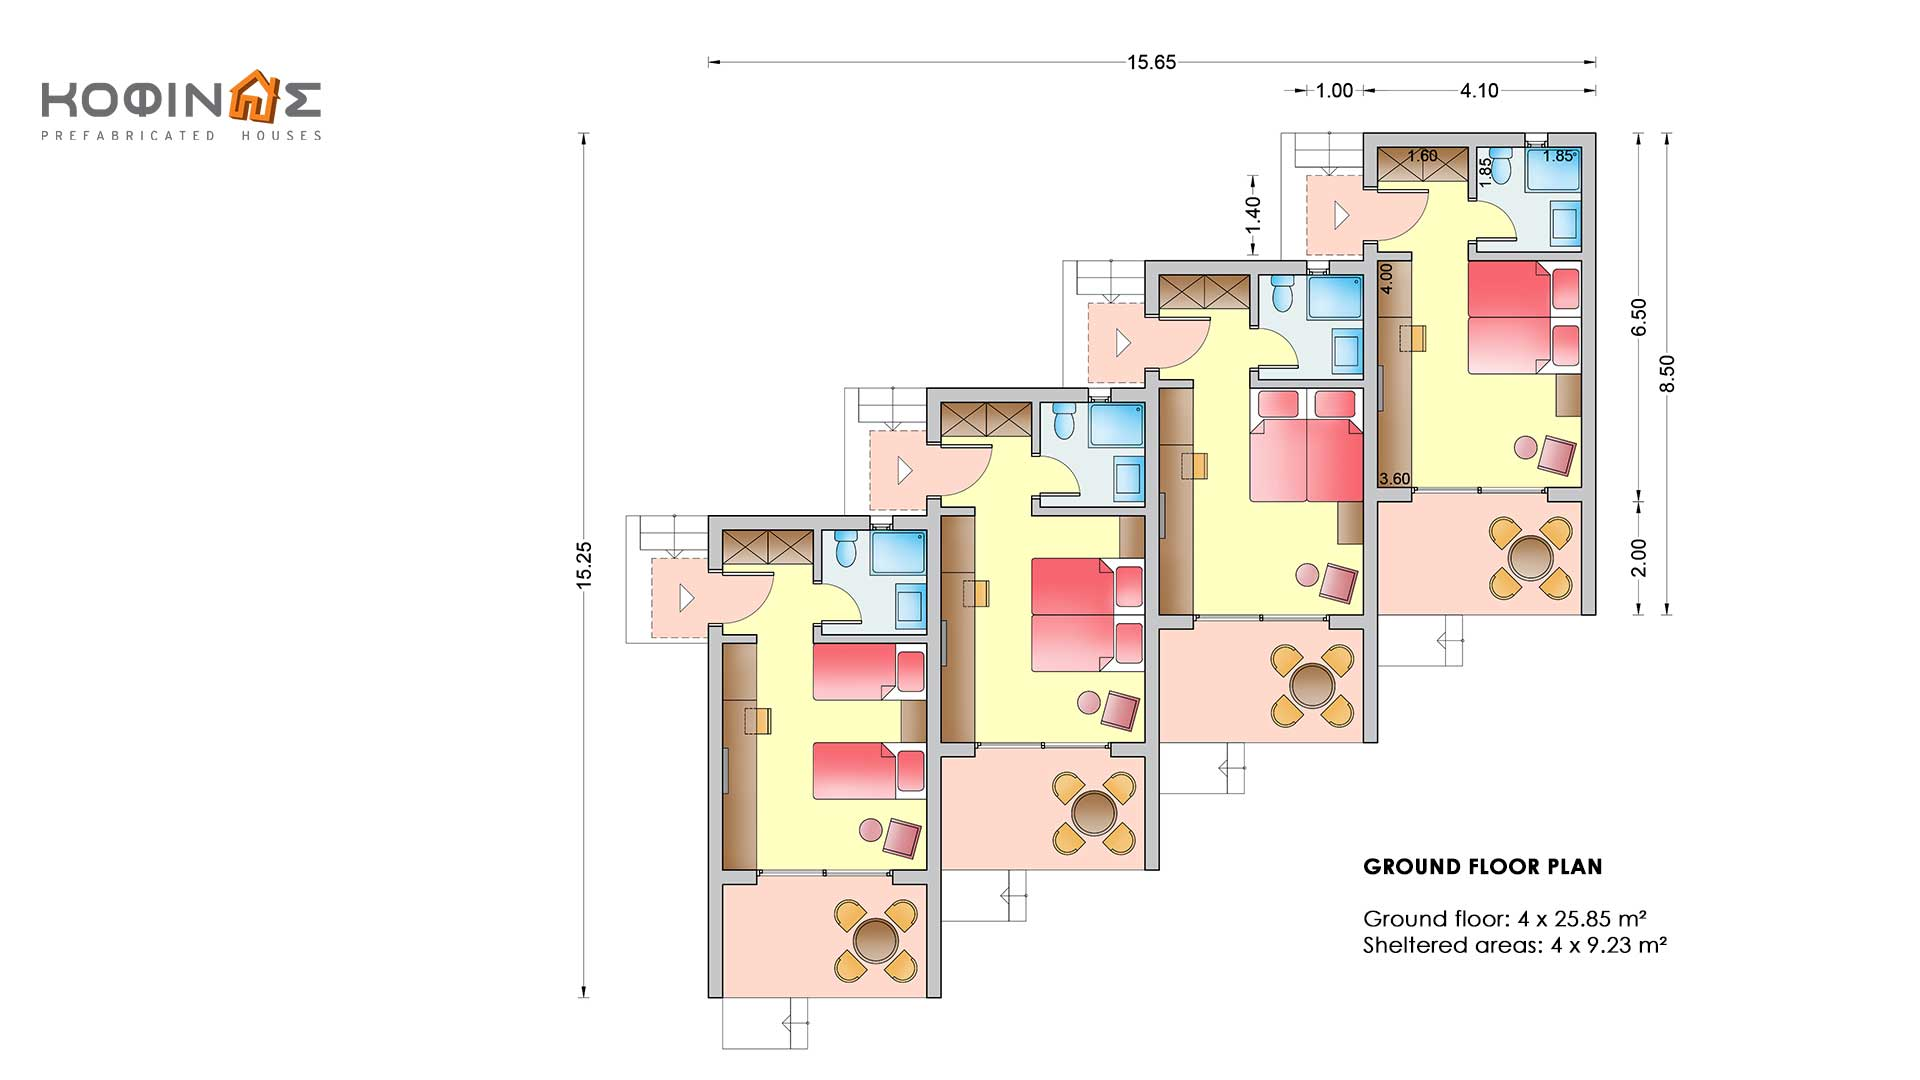 Complex of 1-story houses E-25a, total surface of 4 x 25,85 = 103,40 m²